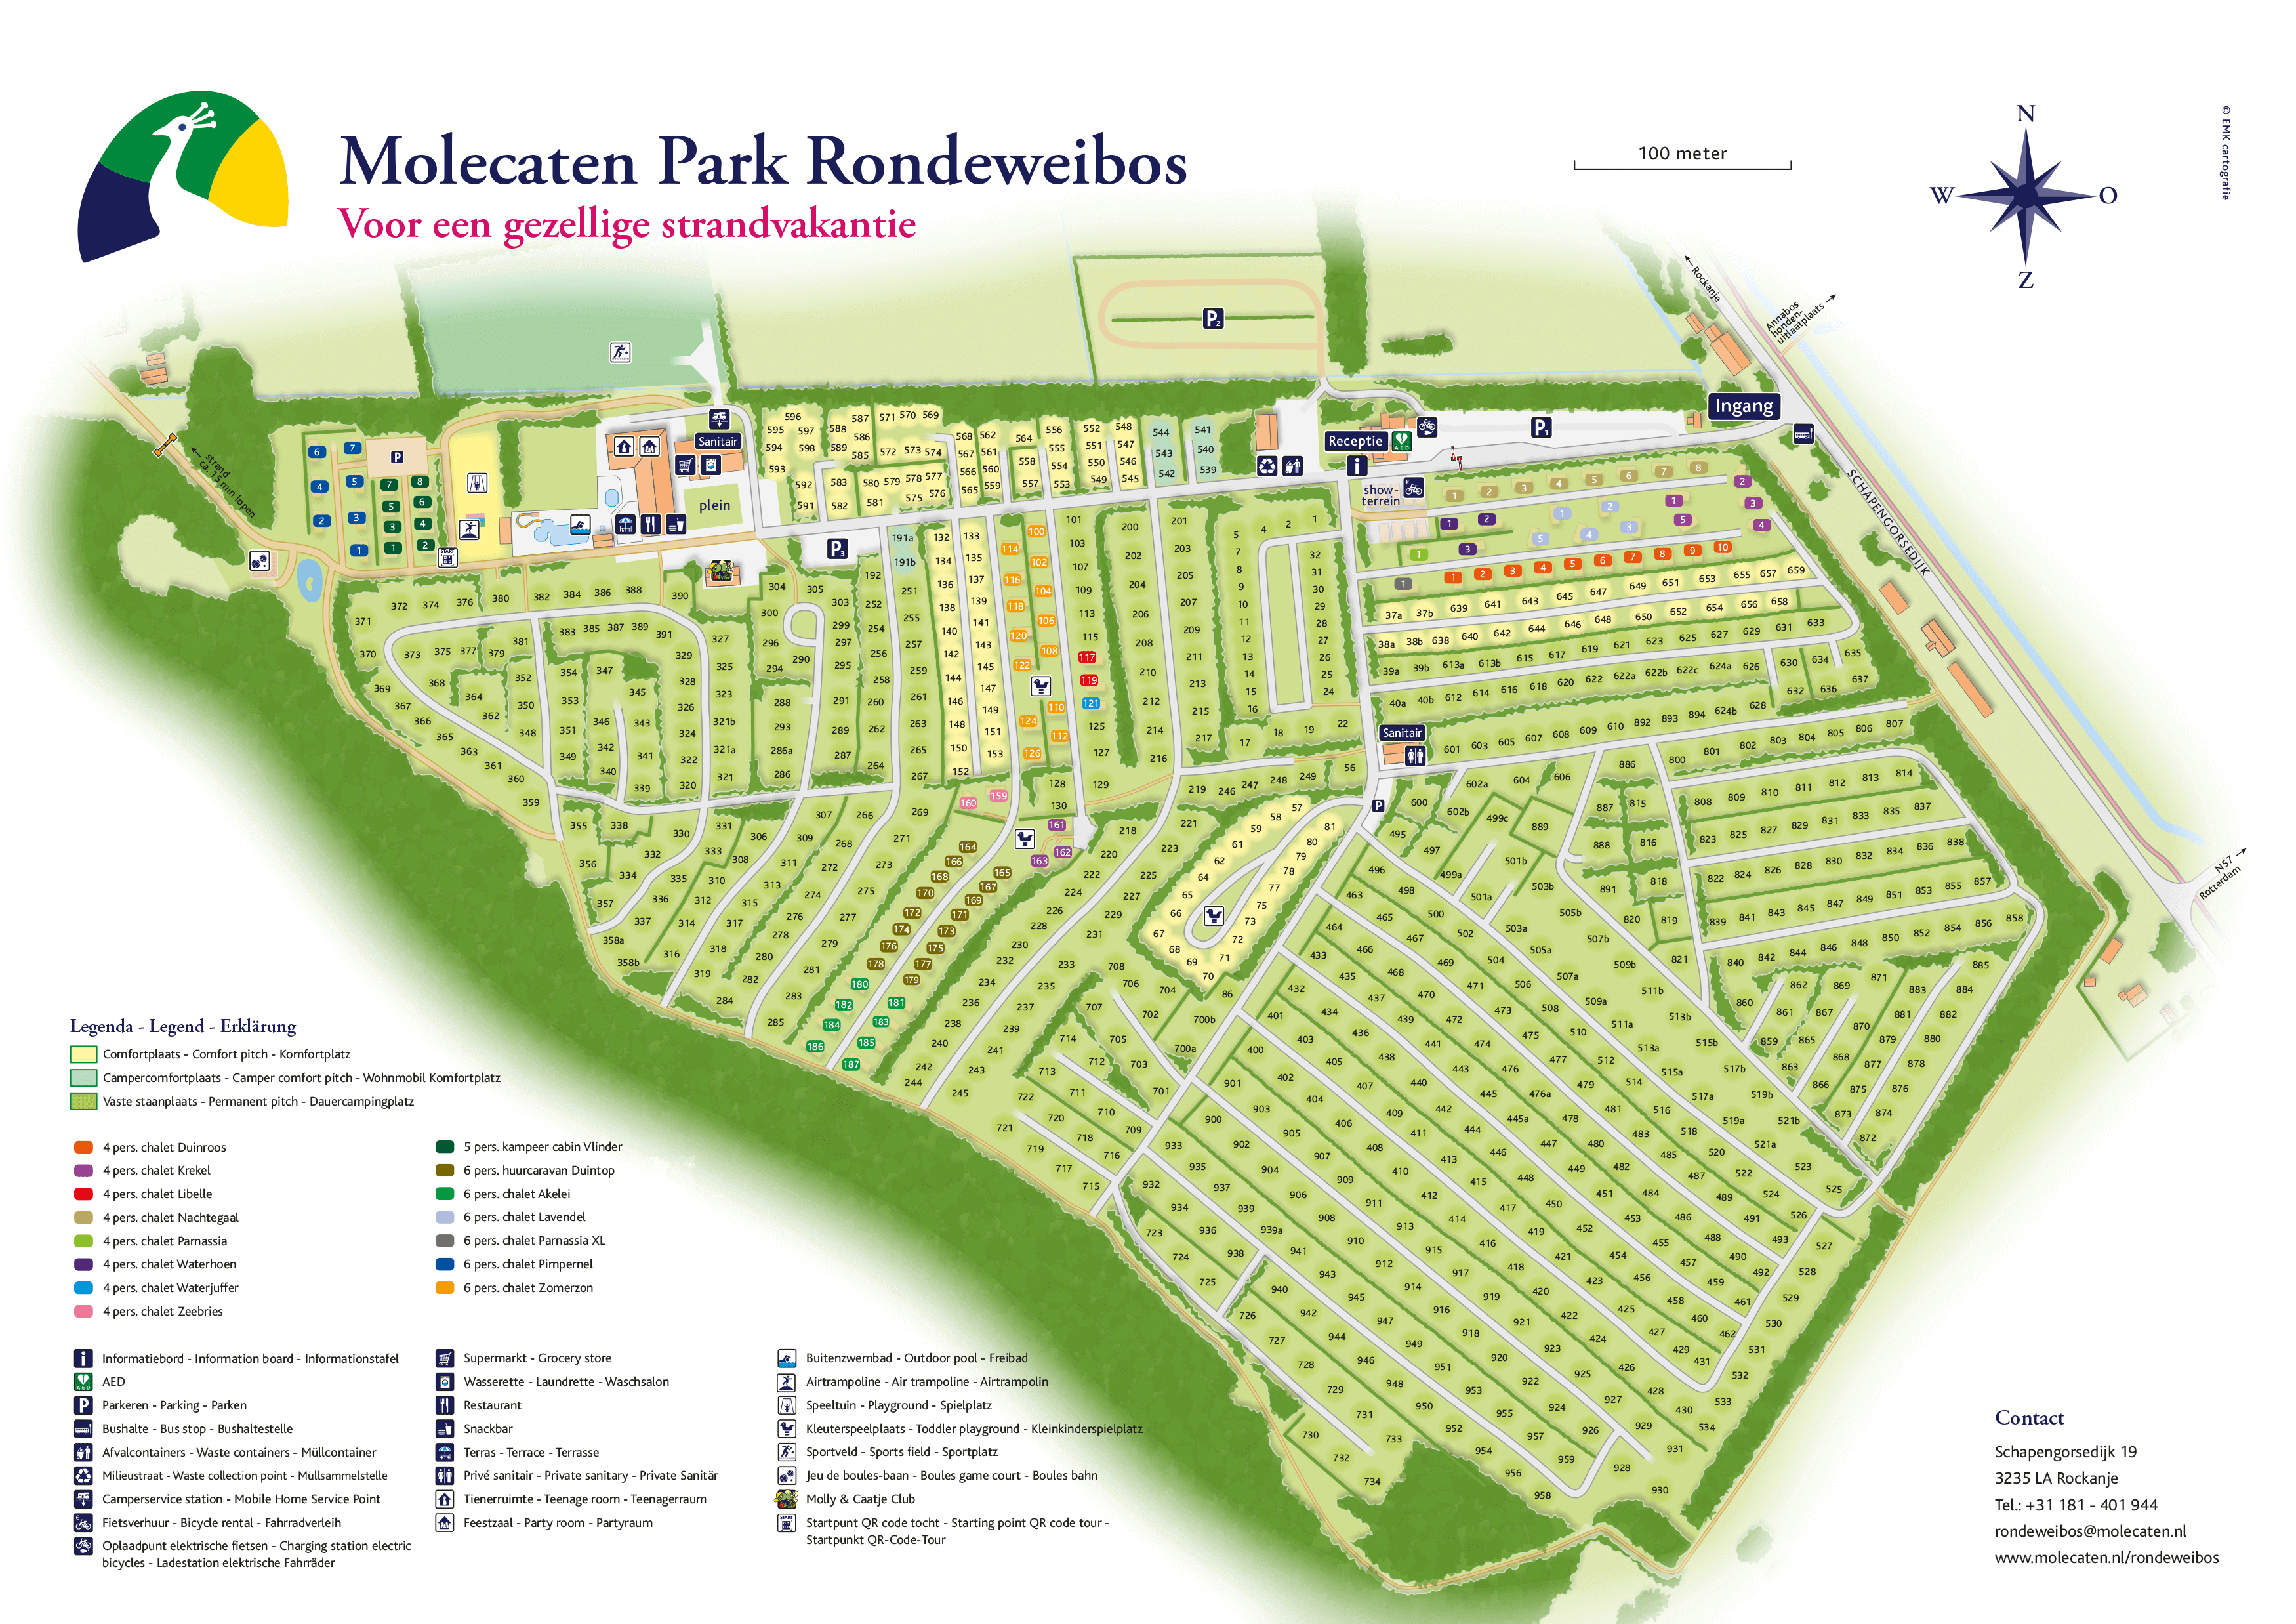 Molecaten Park Rondeweibos accommodation.parkmap.alttext